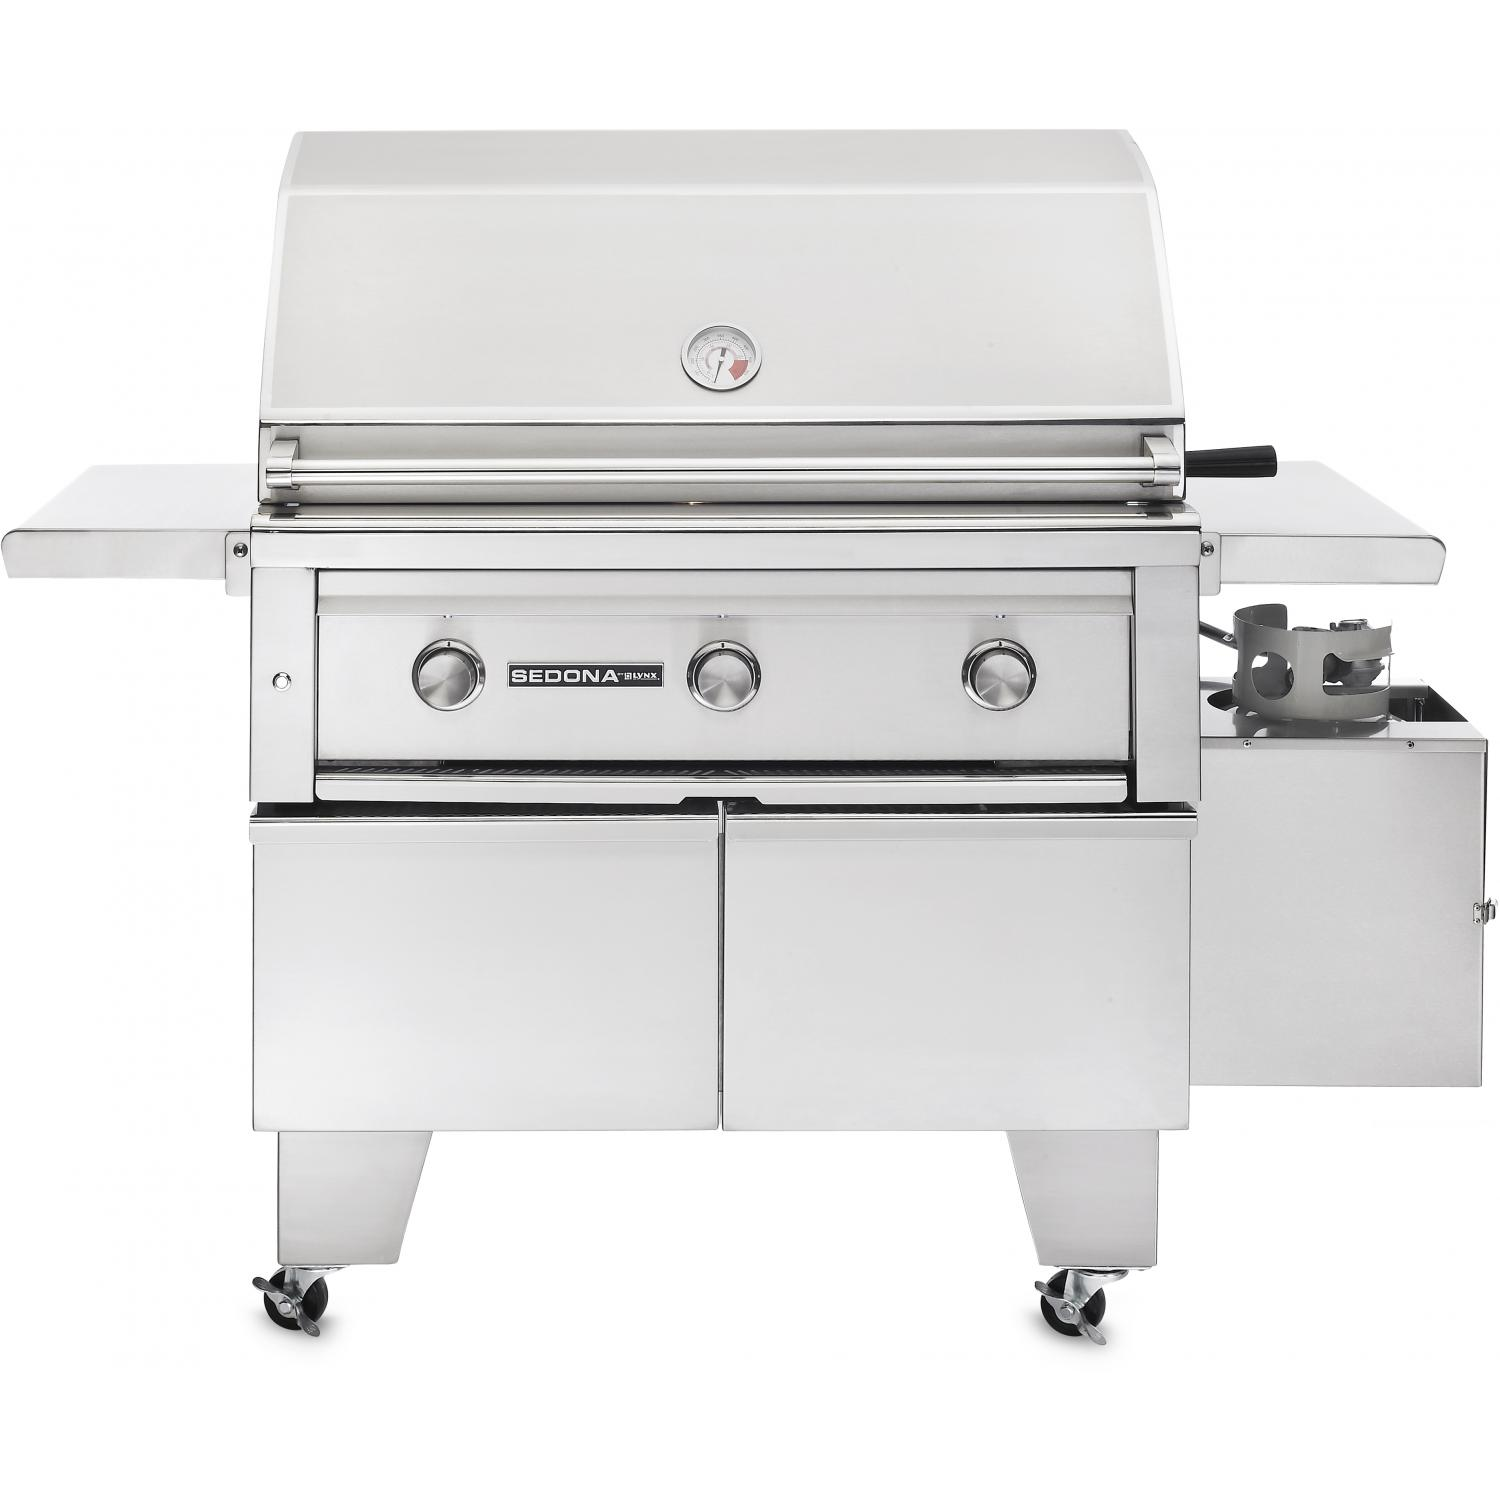 Sedona By Lynx ADA 36-Inch Propane Gas Grill On Cart With ProSear Burner And Rotisserie L600ADAR 2879416